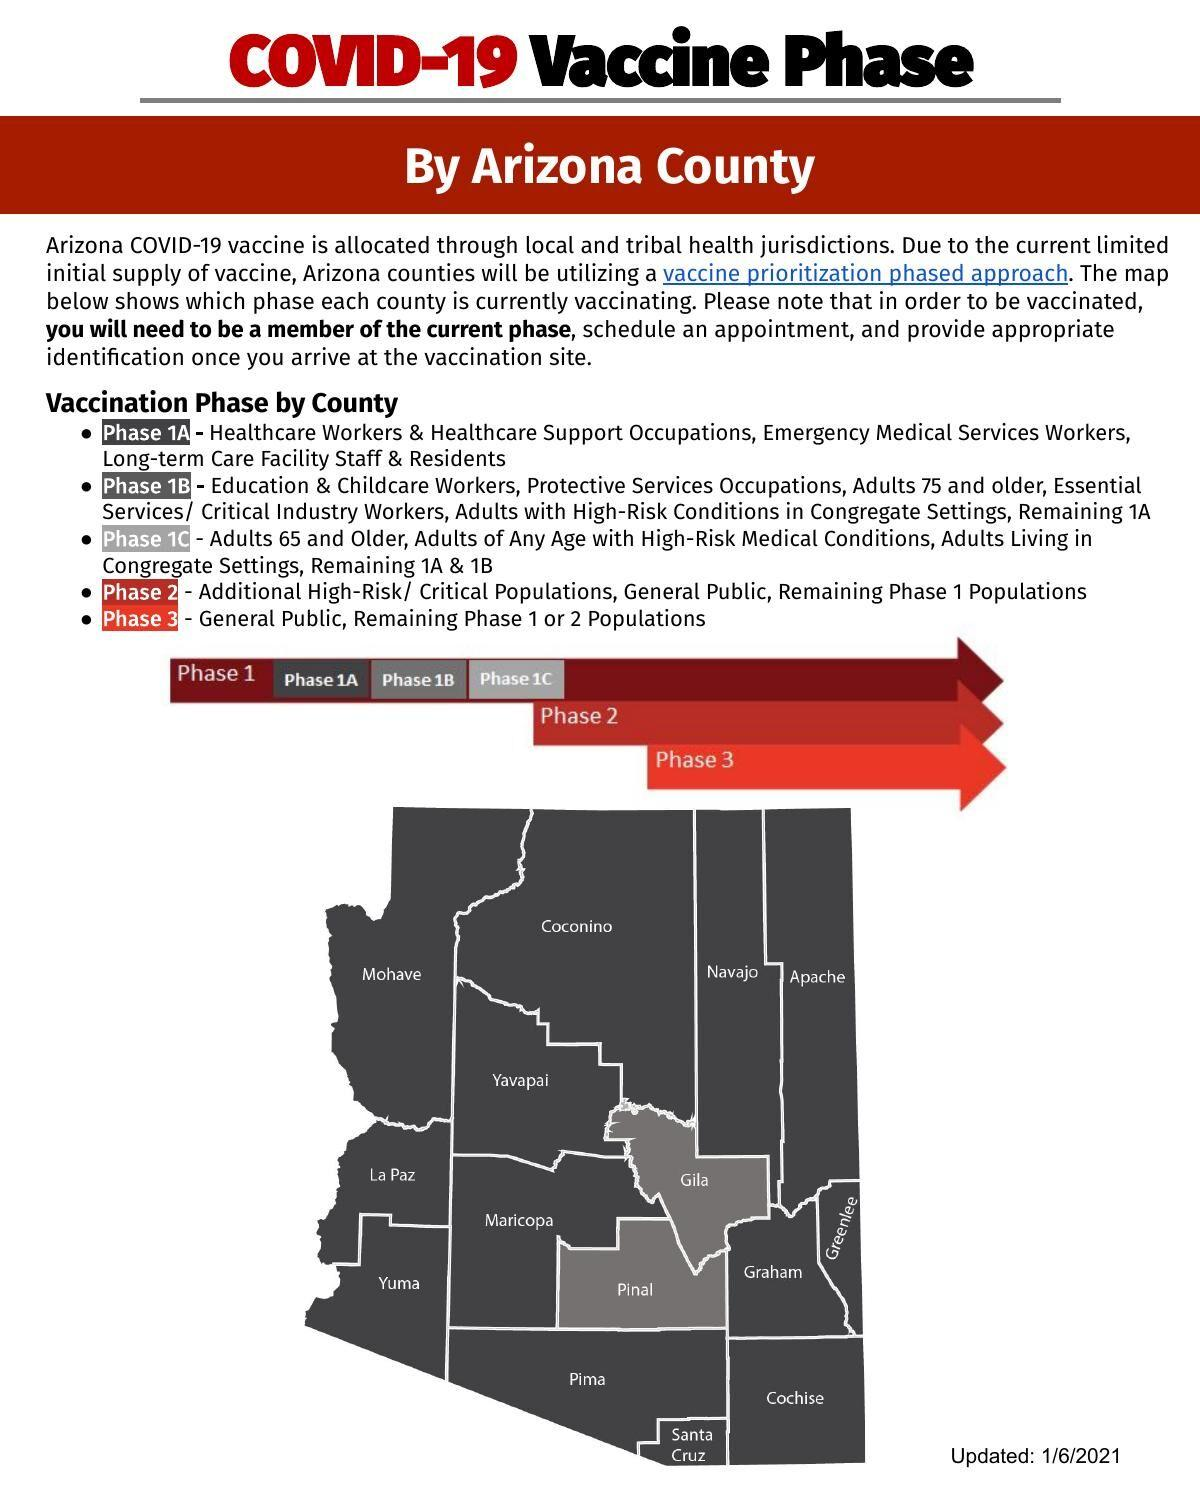 COVID-19 vaccine by Arizona county as of Jan. 6, 2021